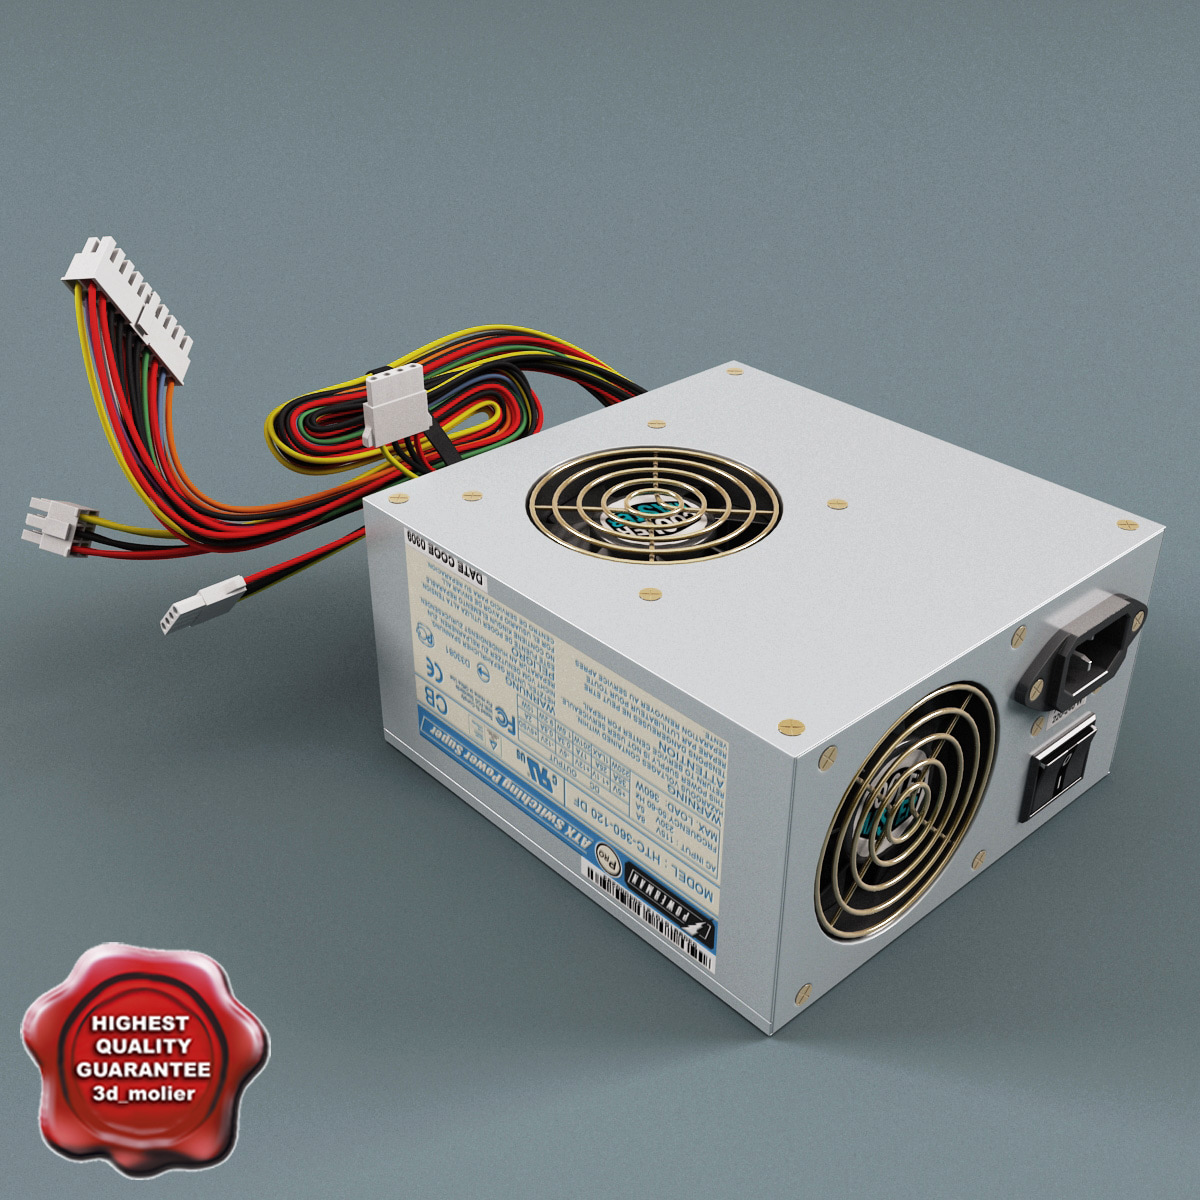 PC_Power_Supply_Unit_Powerman_Pro_00.jpg